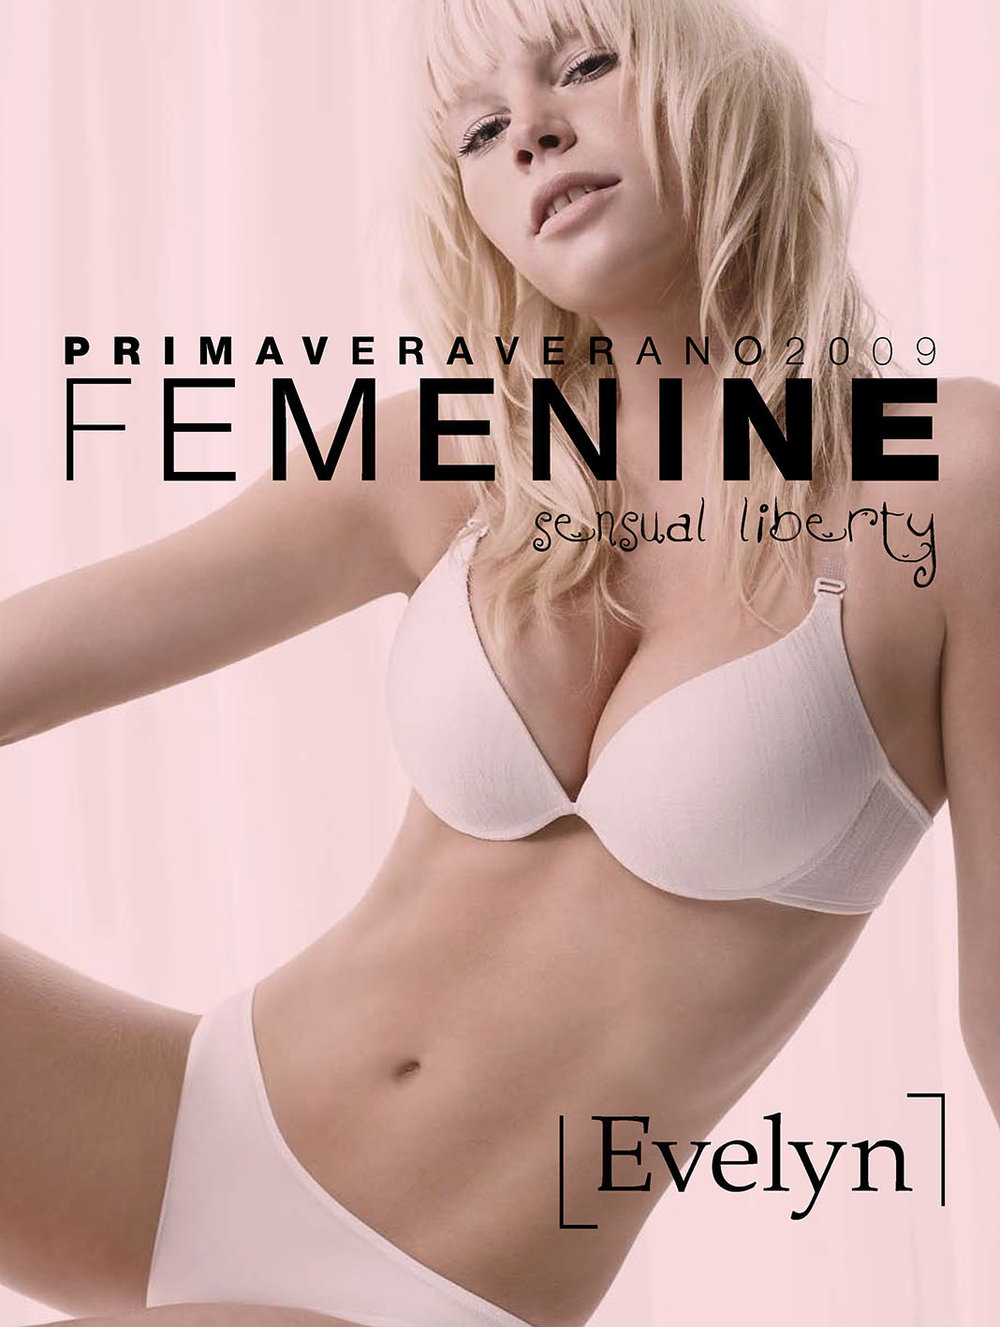 Evelyn PV 09 FEMENINE-1.jpg